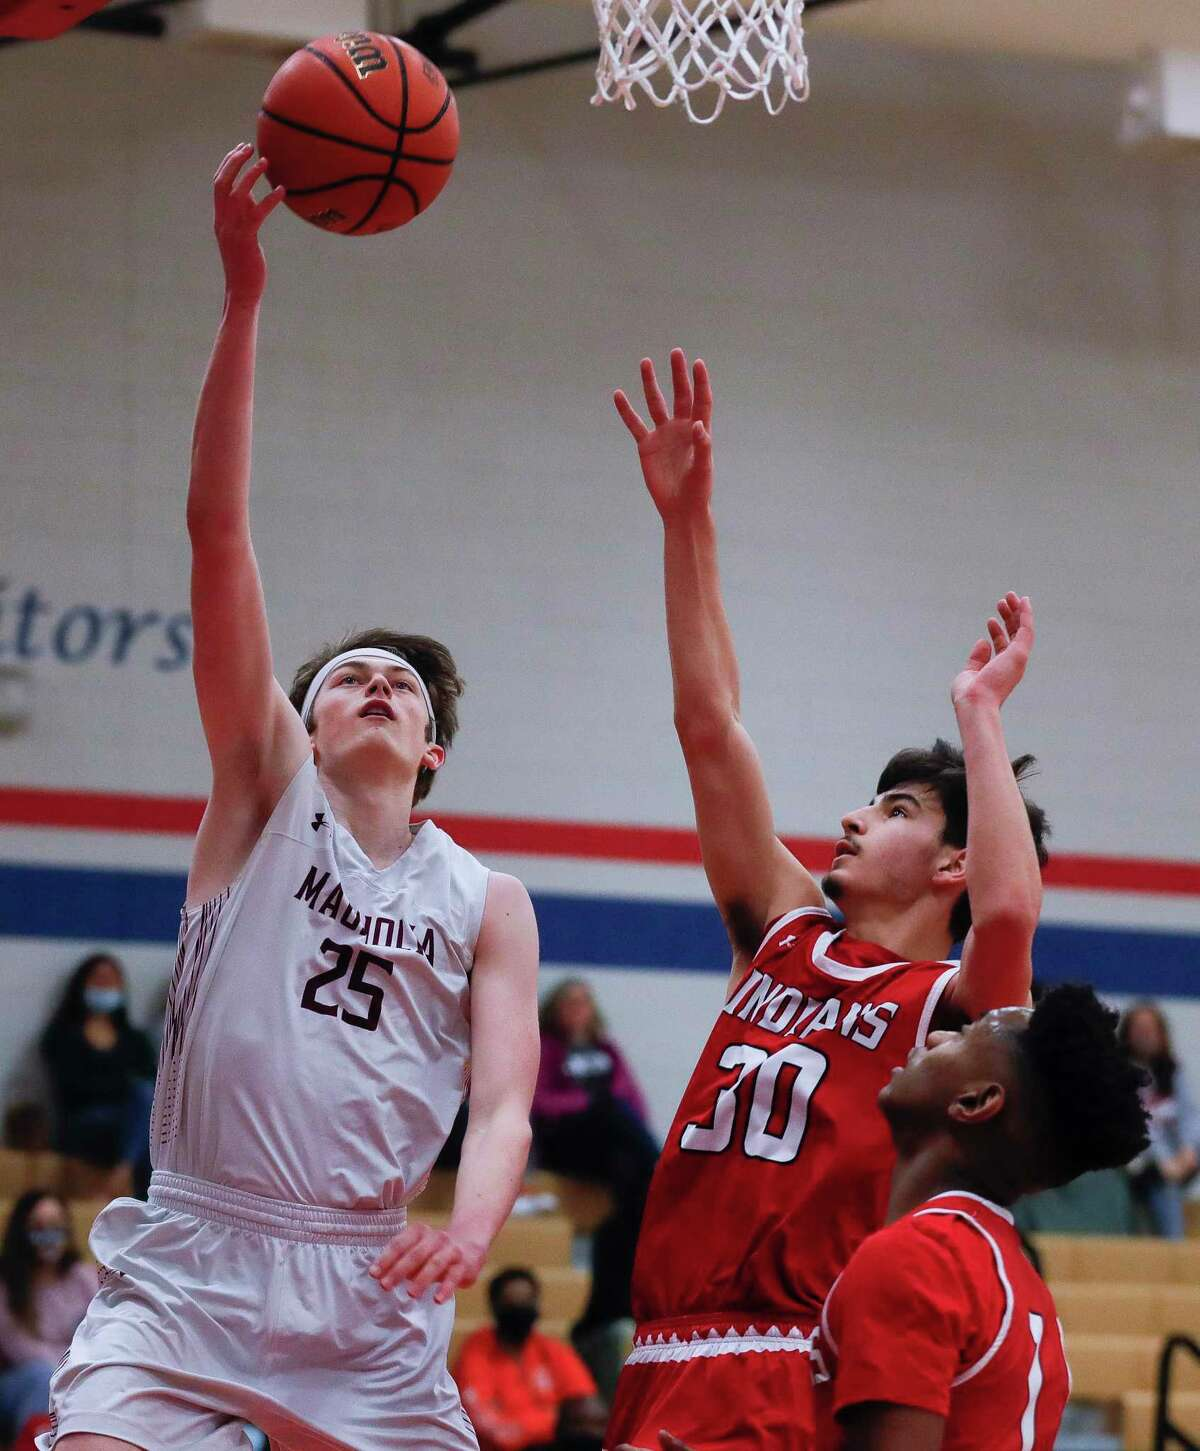 Magnolia guard Kyler Fuller (25) shoots past Cleveland guard Jonathan Aguilar (30) during the first quarter of a Region III-5A area bi-district basketball playoff game at Oak Ridge High School, Saturday, Feb. 20, 2021.